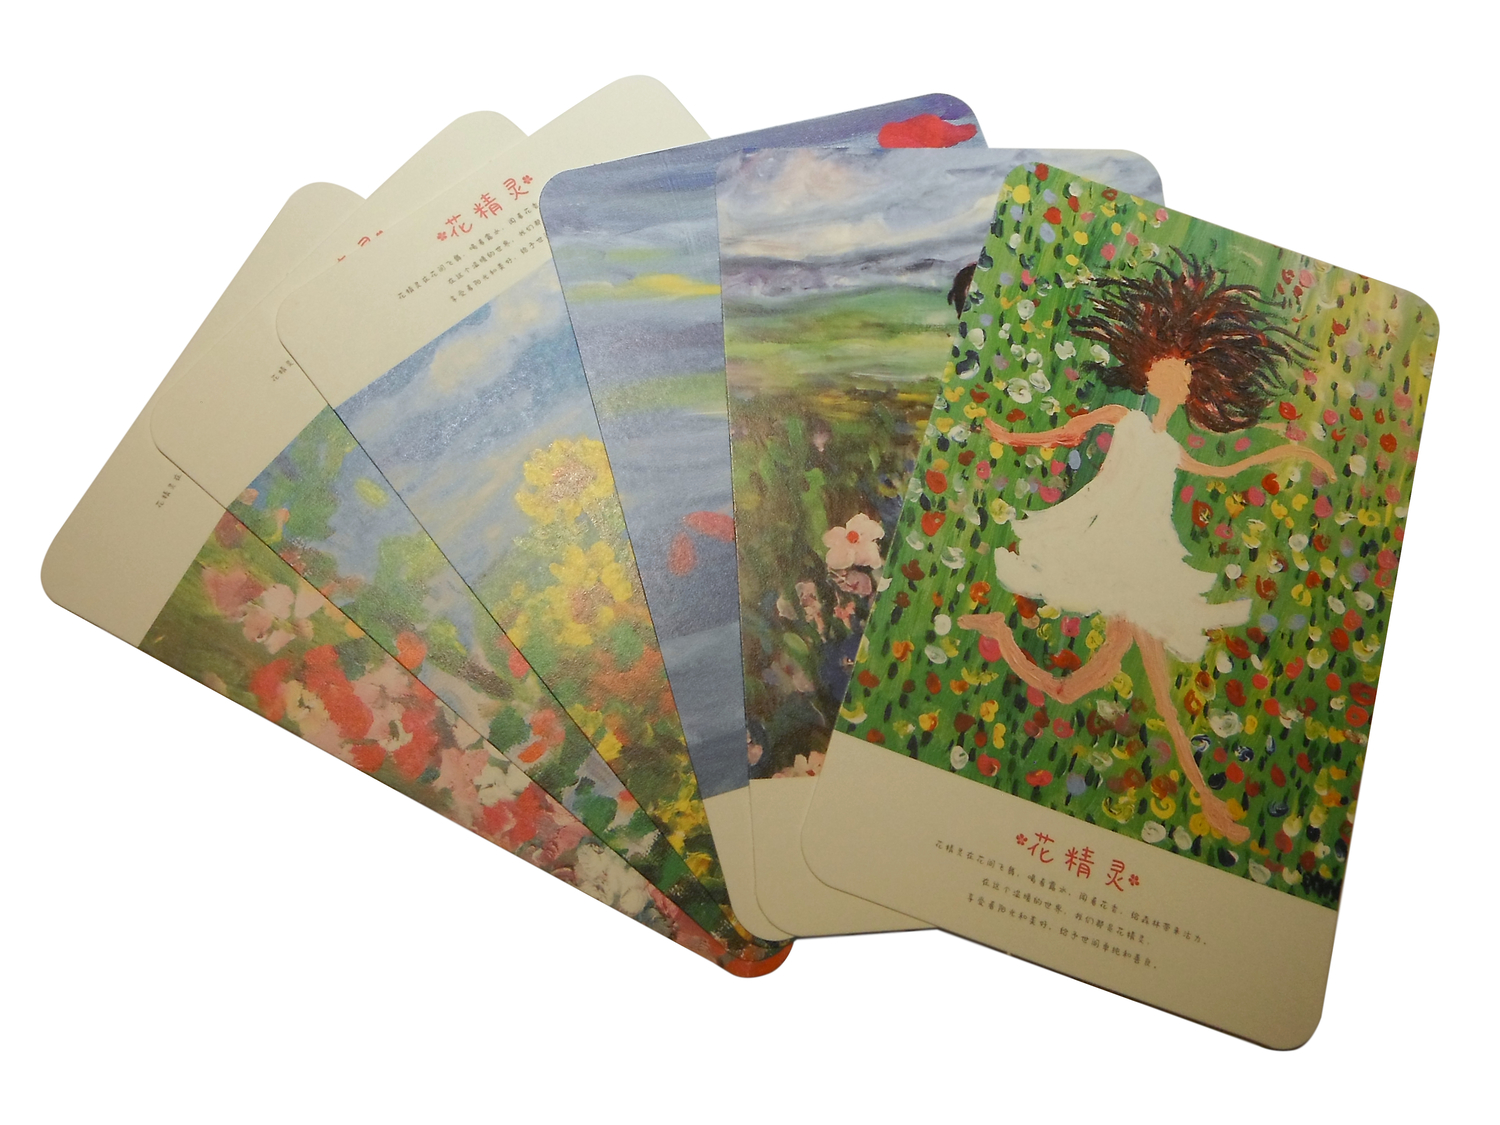 <p>Xie Yuxin Illustrated Post Cards</p>